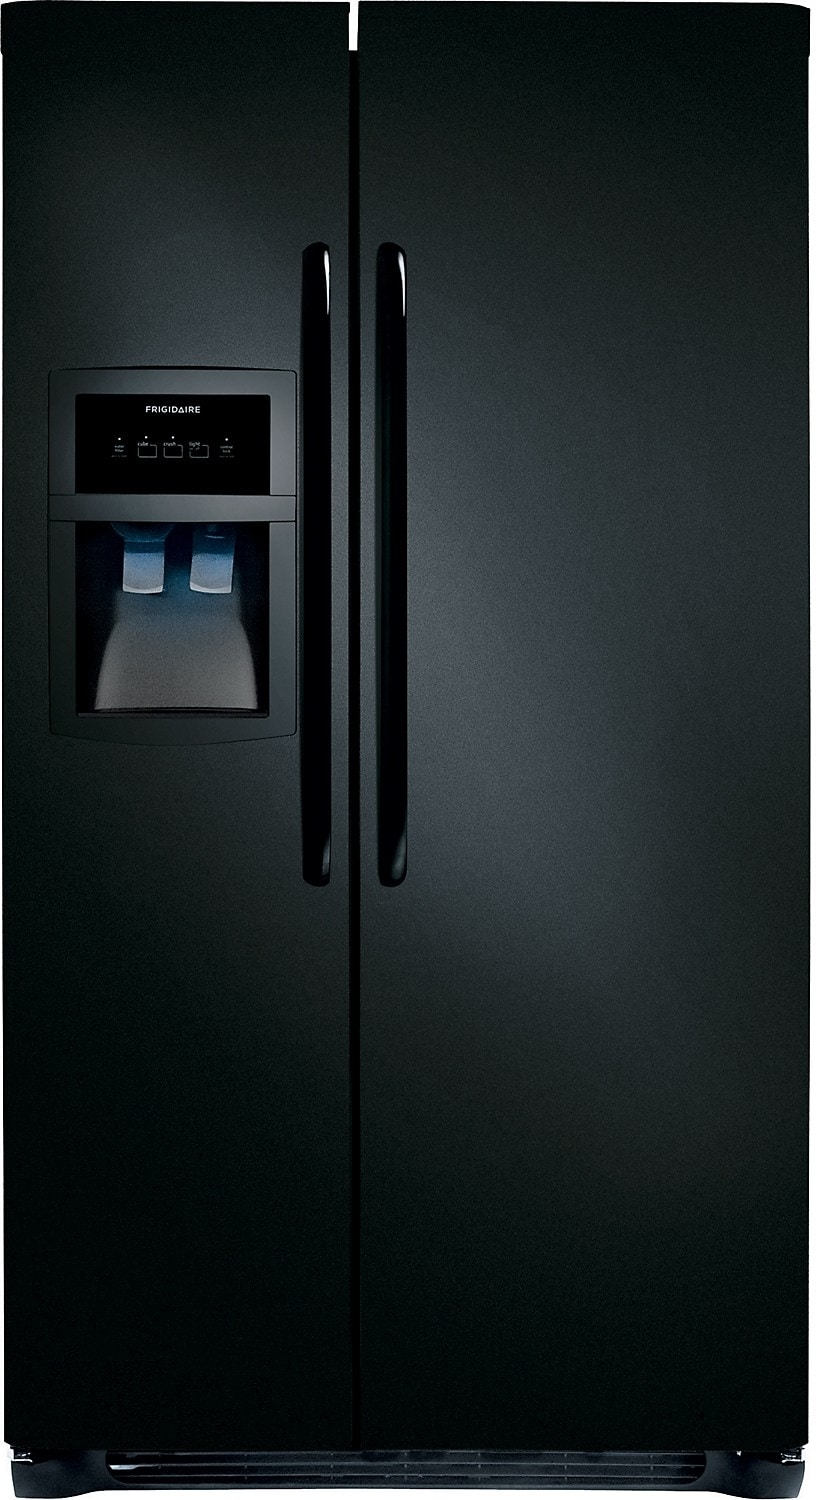 Frigidaire 23 Cu. Ft. Standard-Depth Side-by-Side Refrigerator - Black